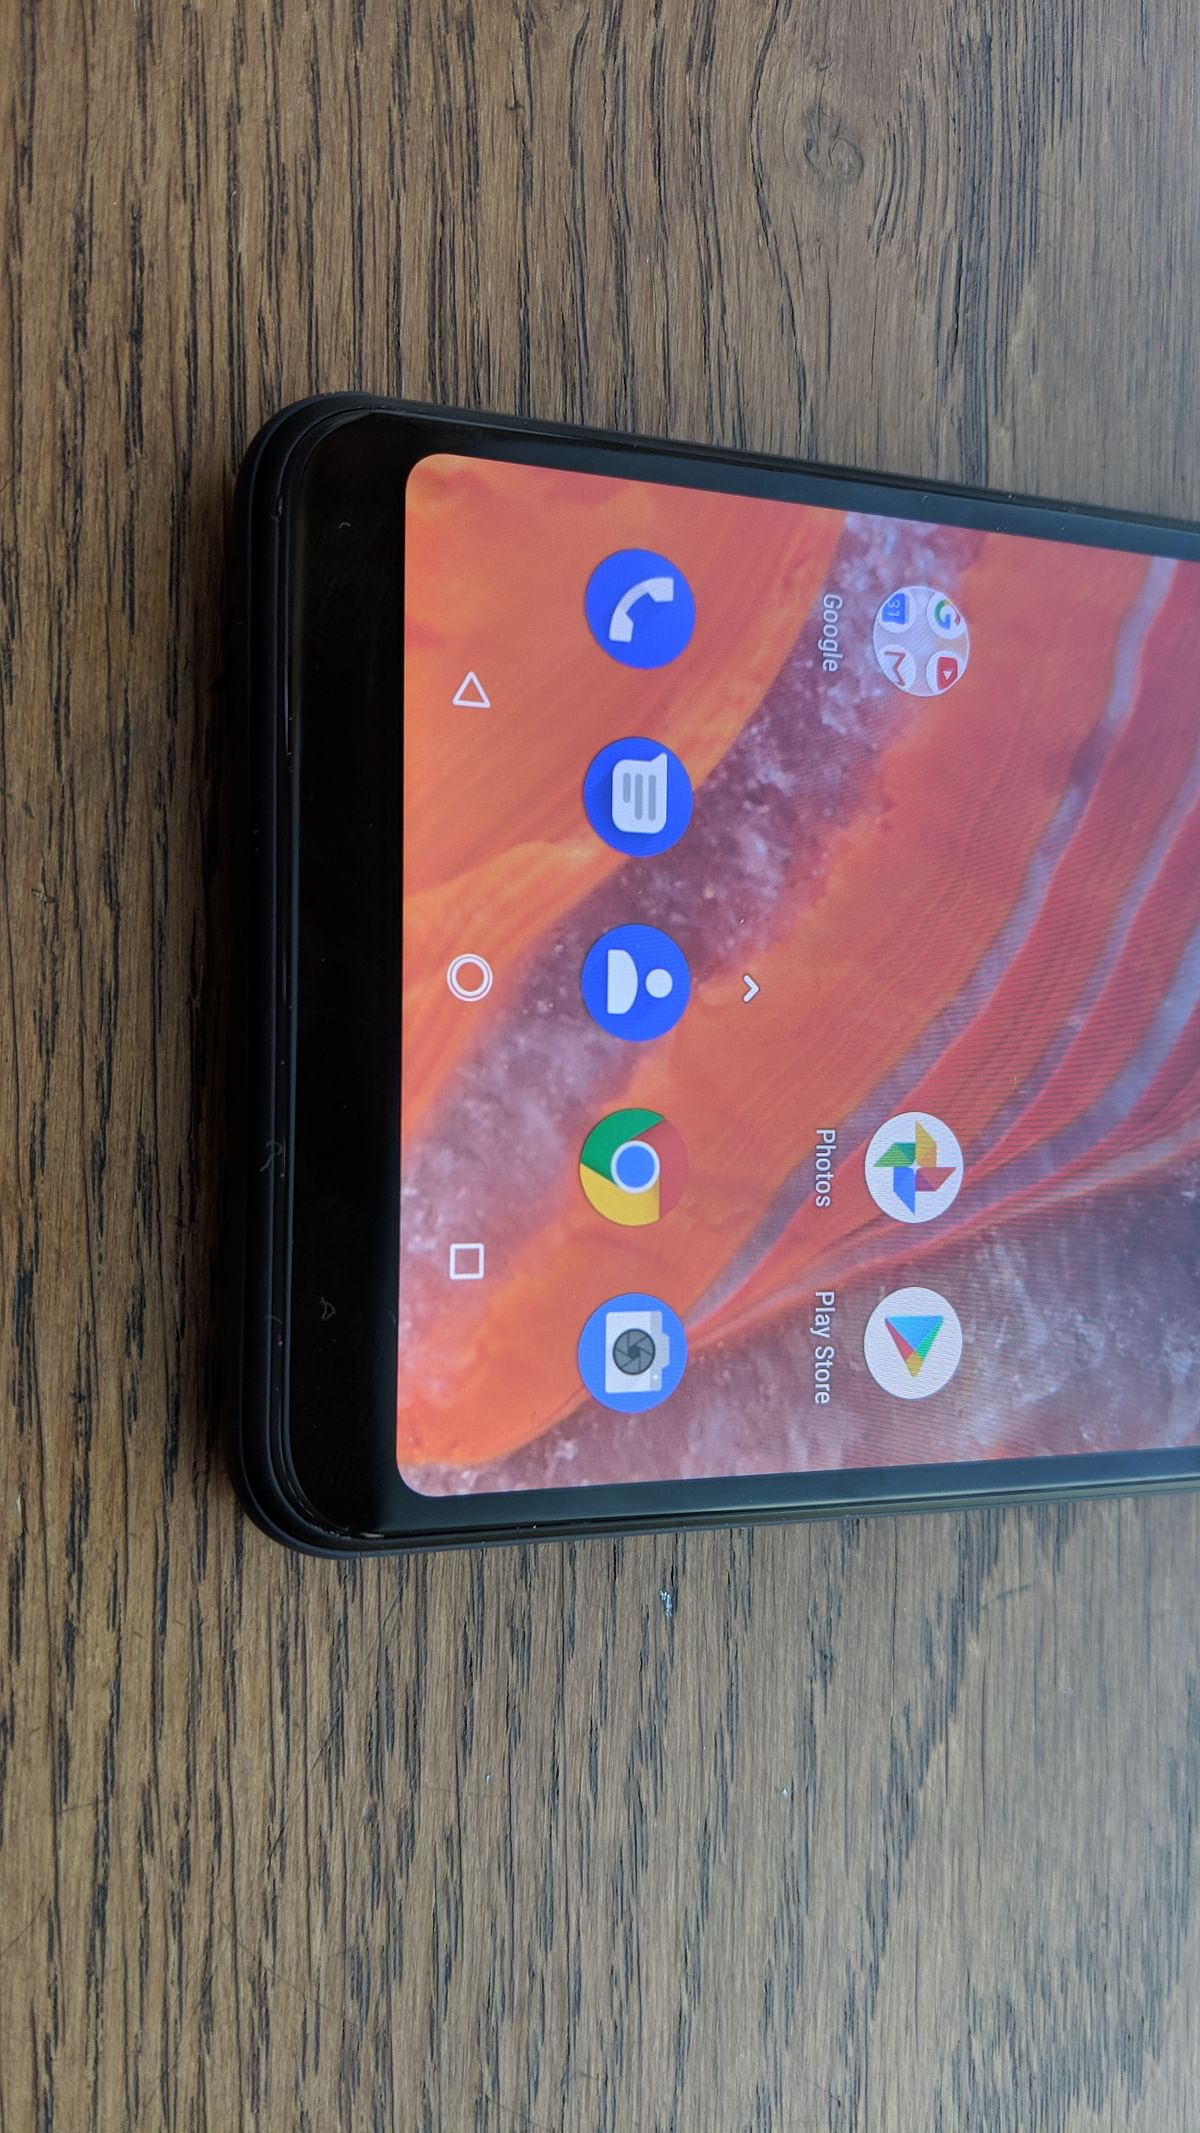 It doesn't have the notch design on the screen. Phew.